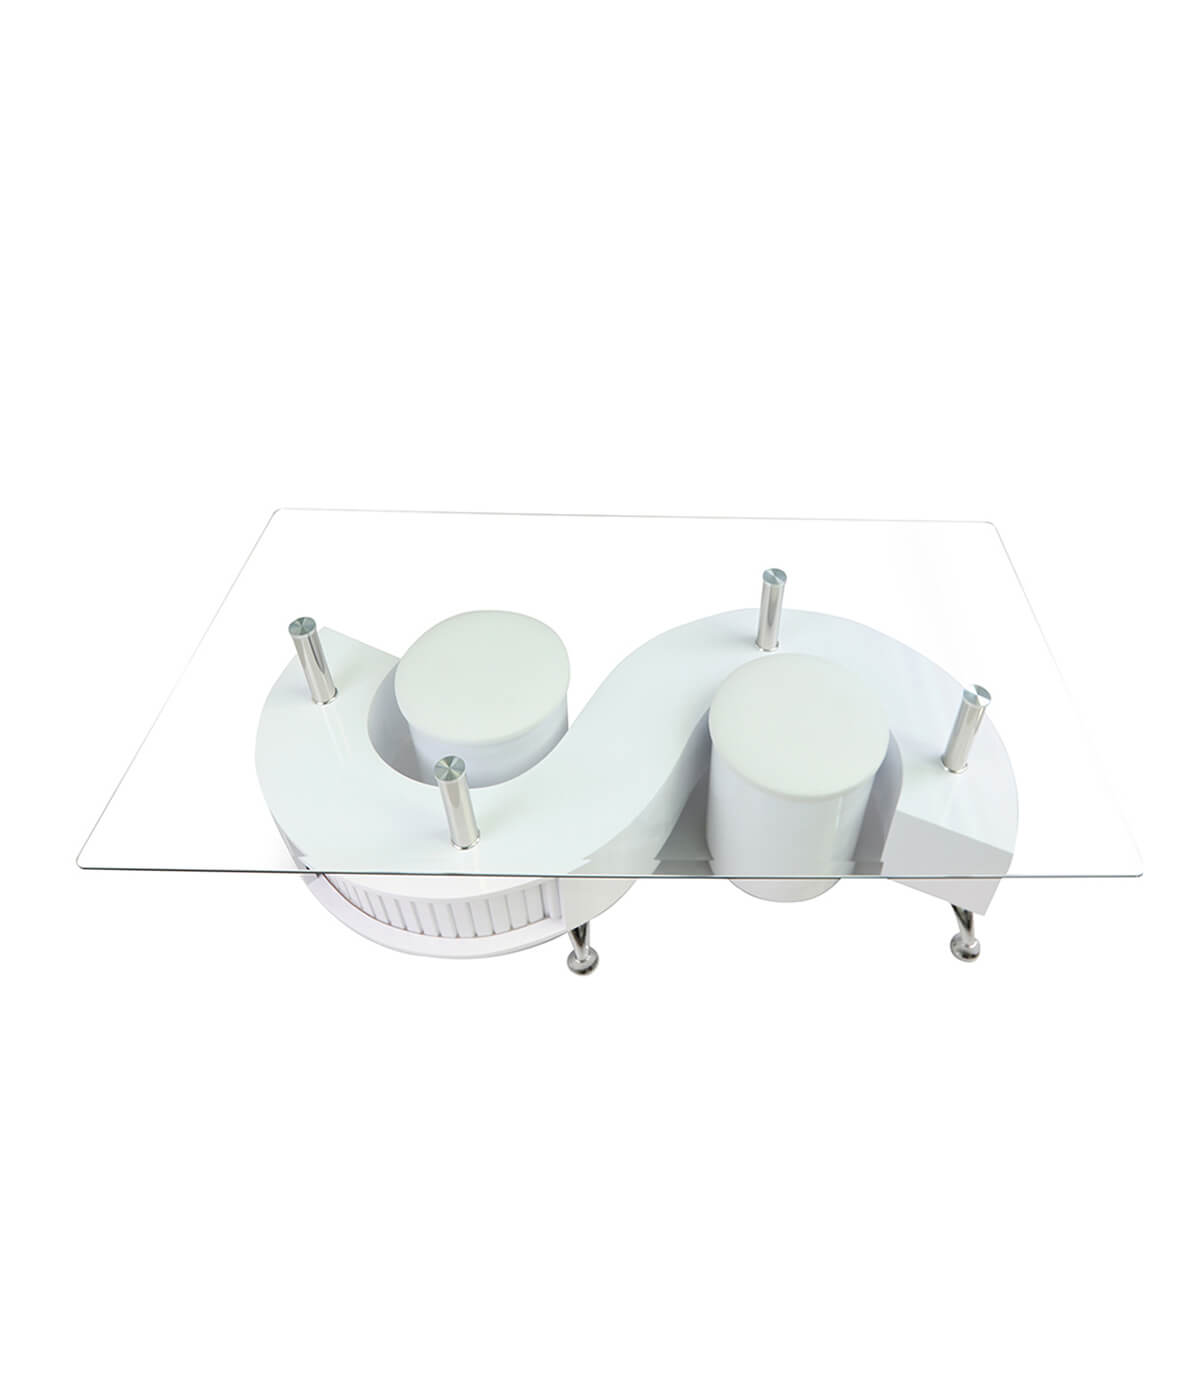 S Shaped Coffee Table Manchester Furniture Supplies